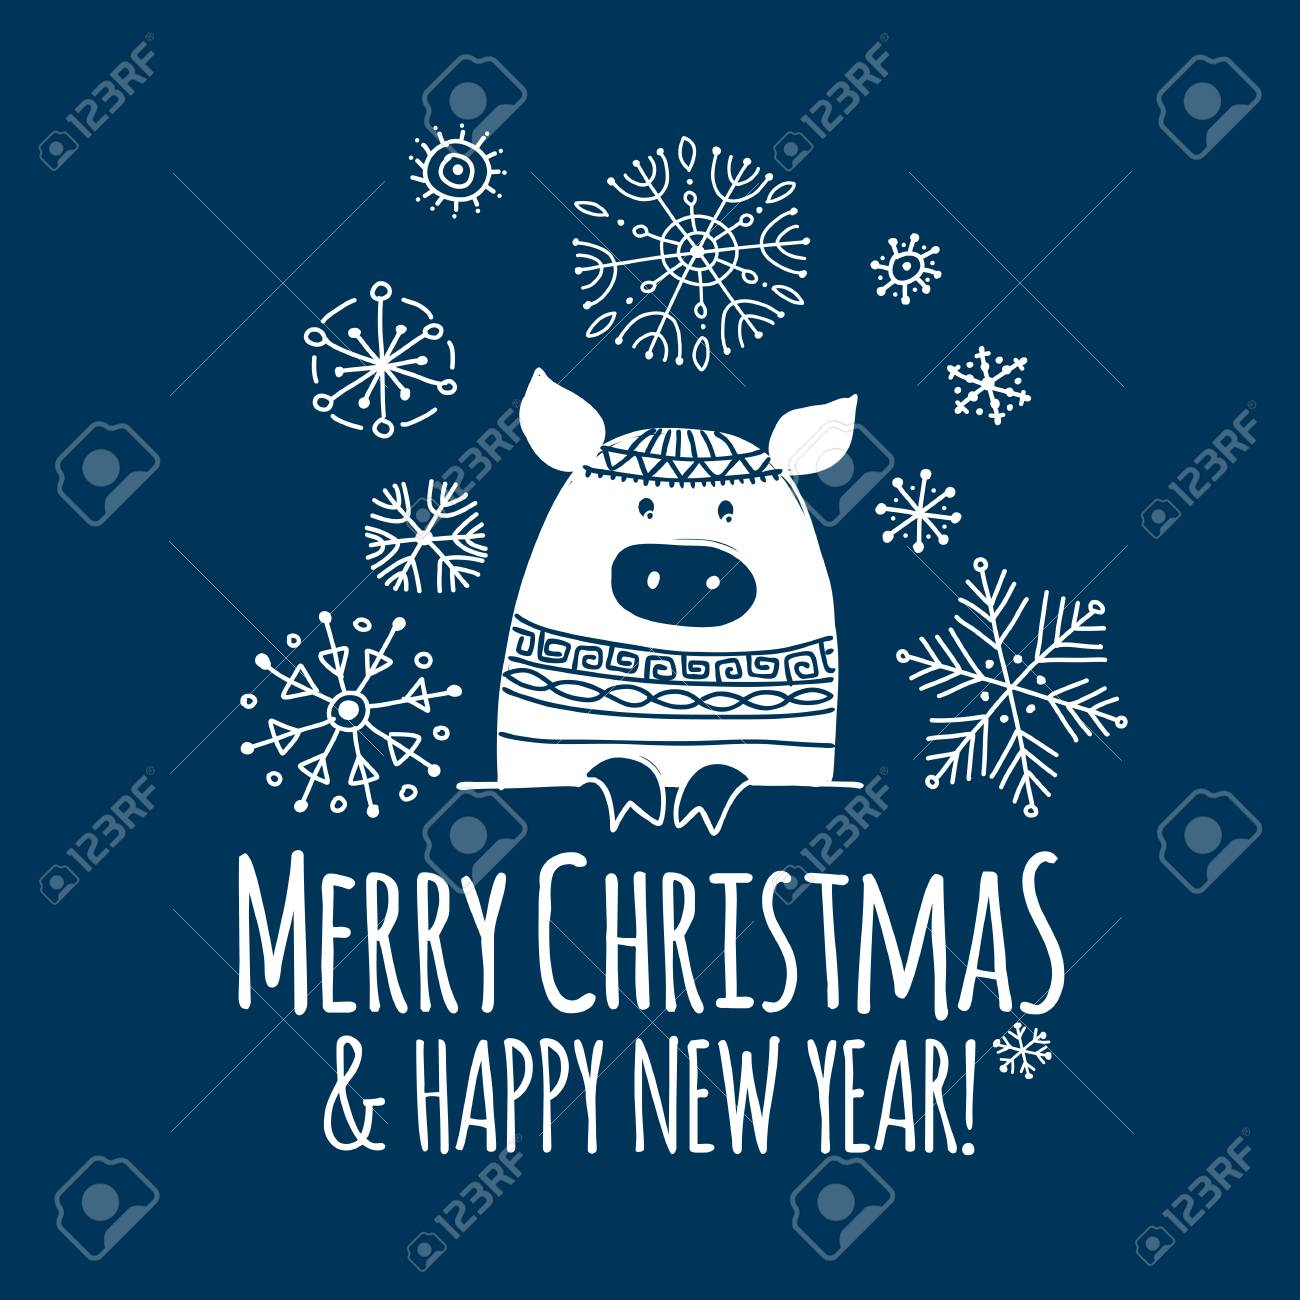 Christmas Card With Funny Pig Symbol Of 2019 Year For Your Design